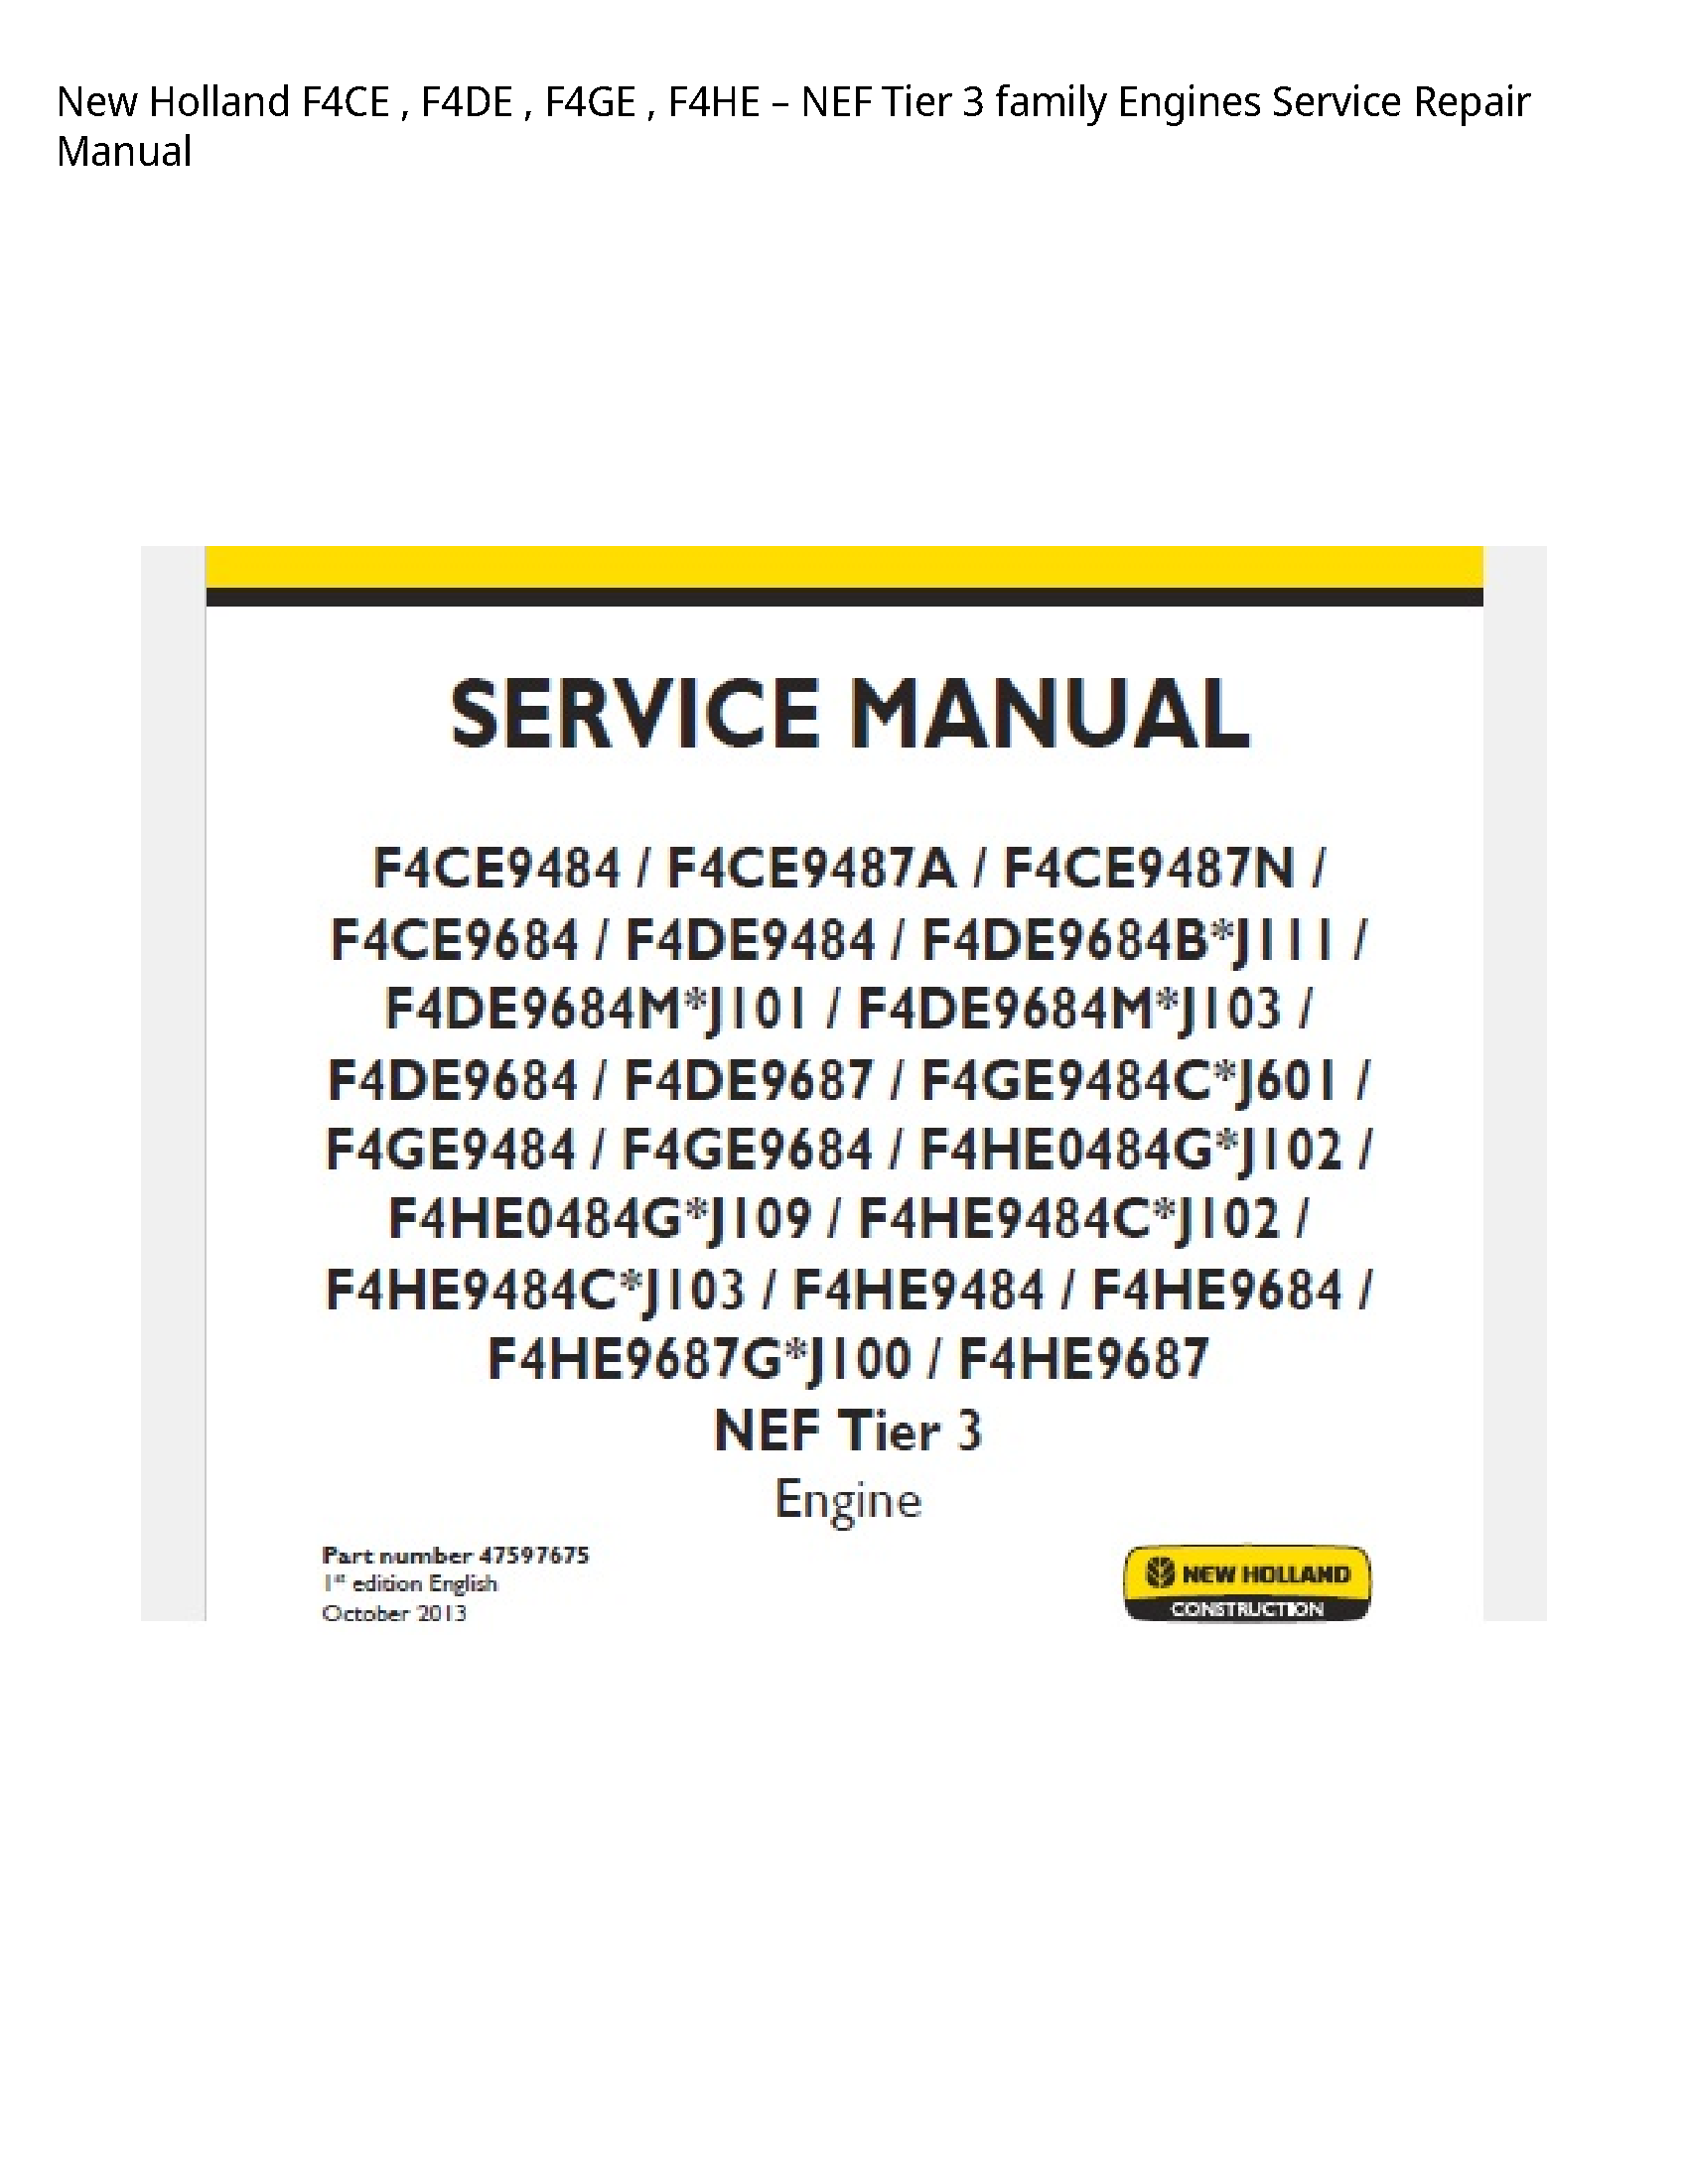 New Holland F4CE NEF Tier family Engines manual